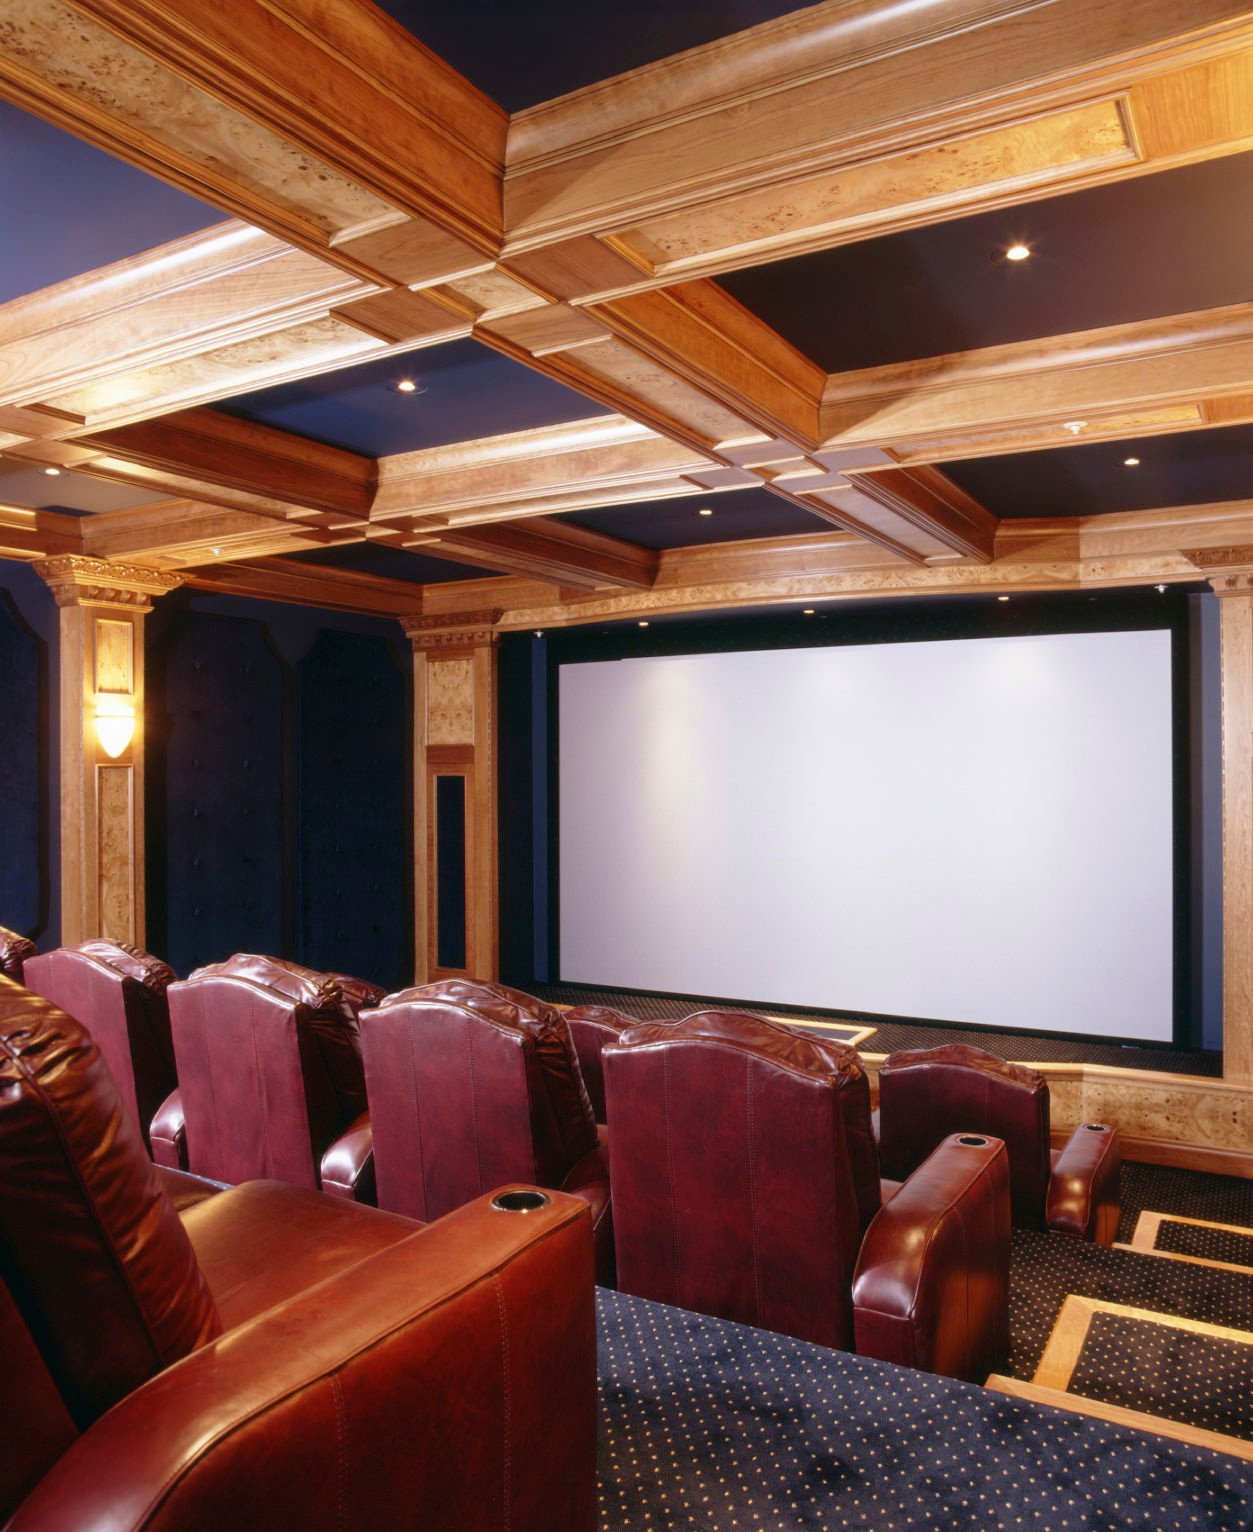 Small Home Theater Room Design: 90 Home Theater & Media Room Ideas (Photos